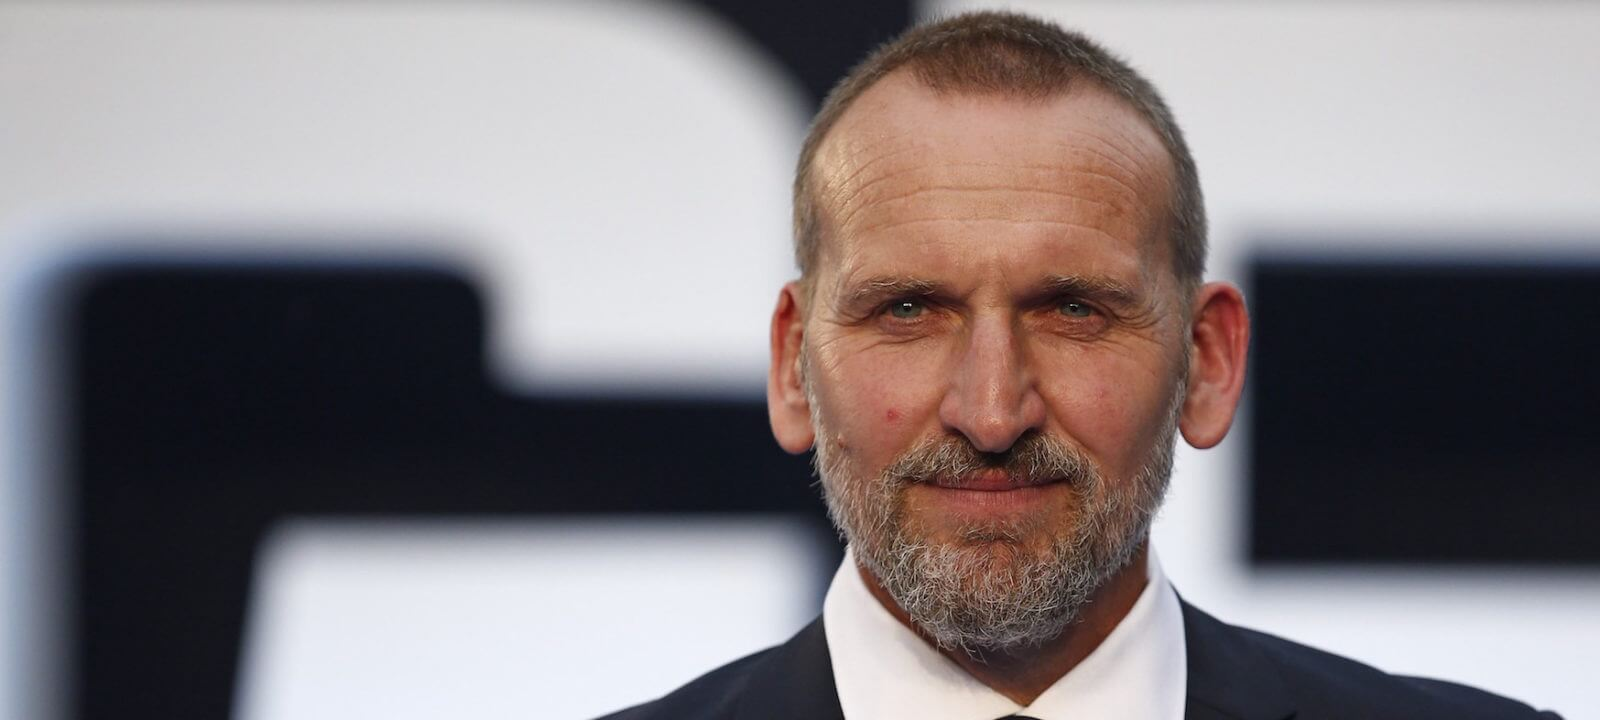 """British actor Christopher Ecclestone poses for pictures on the red carpet after arriving to attend the world premier of """"Legend"""" in central London on September 3, 2015.    AFP PHOTO / JUSTIN TALLIS        (Photo credit should read JUSTIN TALLIS/AFP/Getty Images)"""